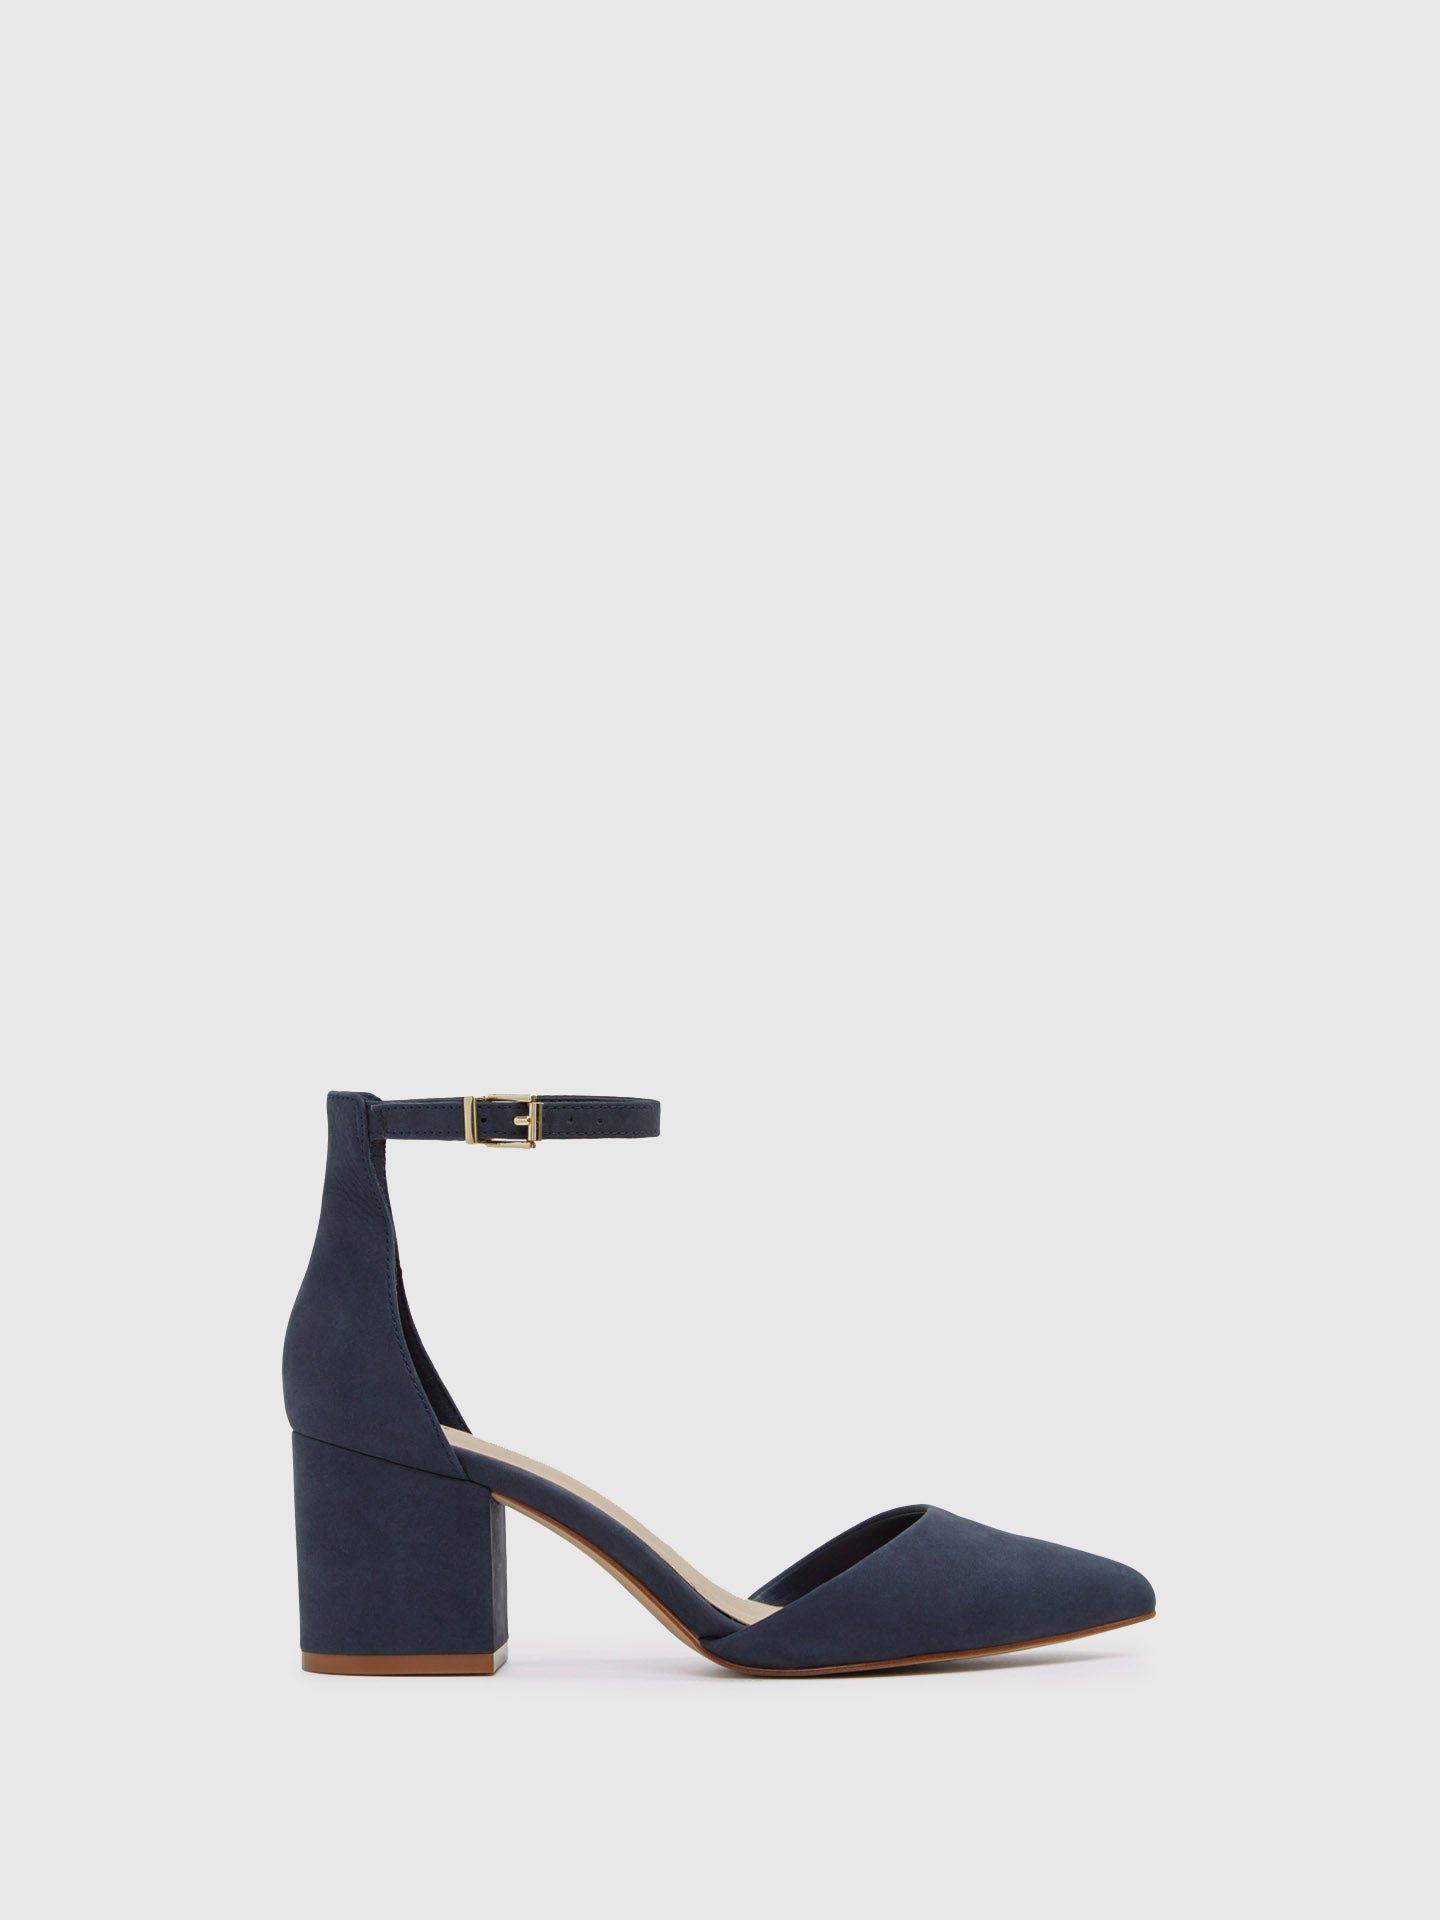 Aldo Navy Ankle Strap Shoes